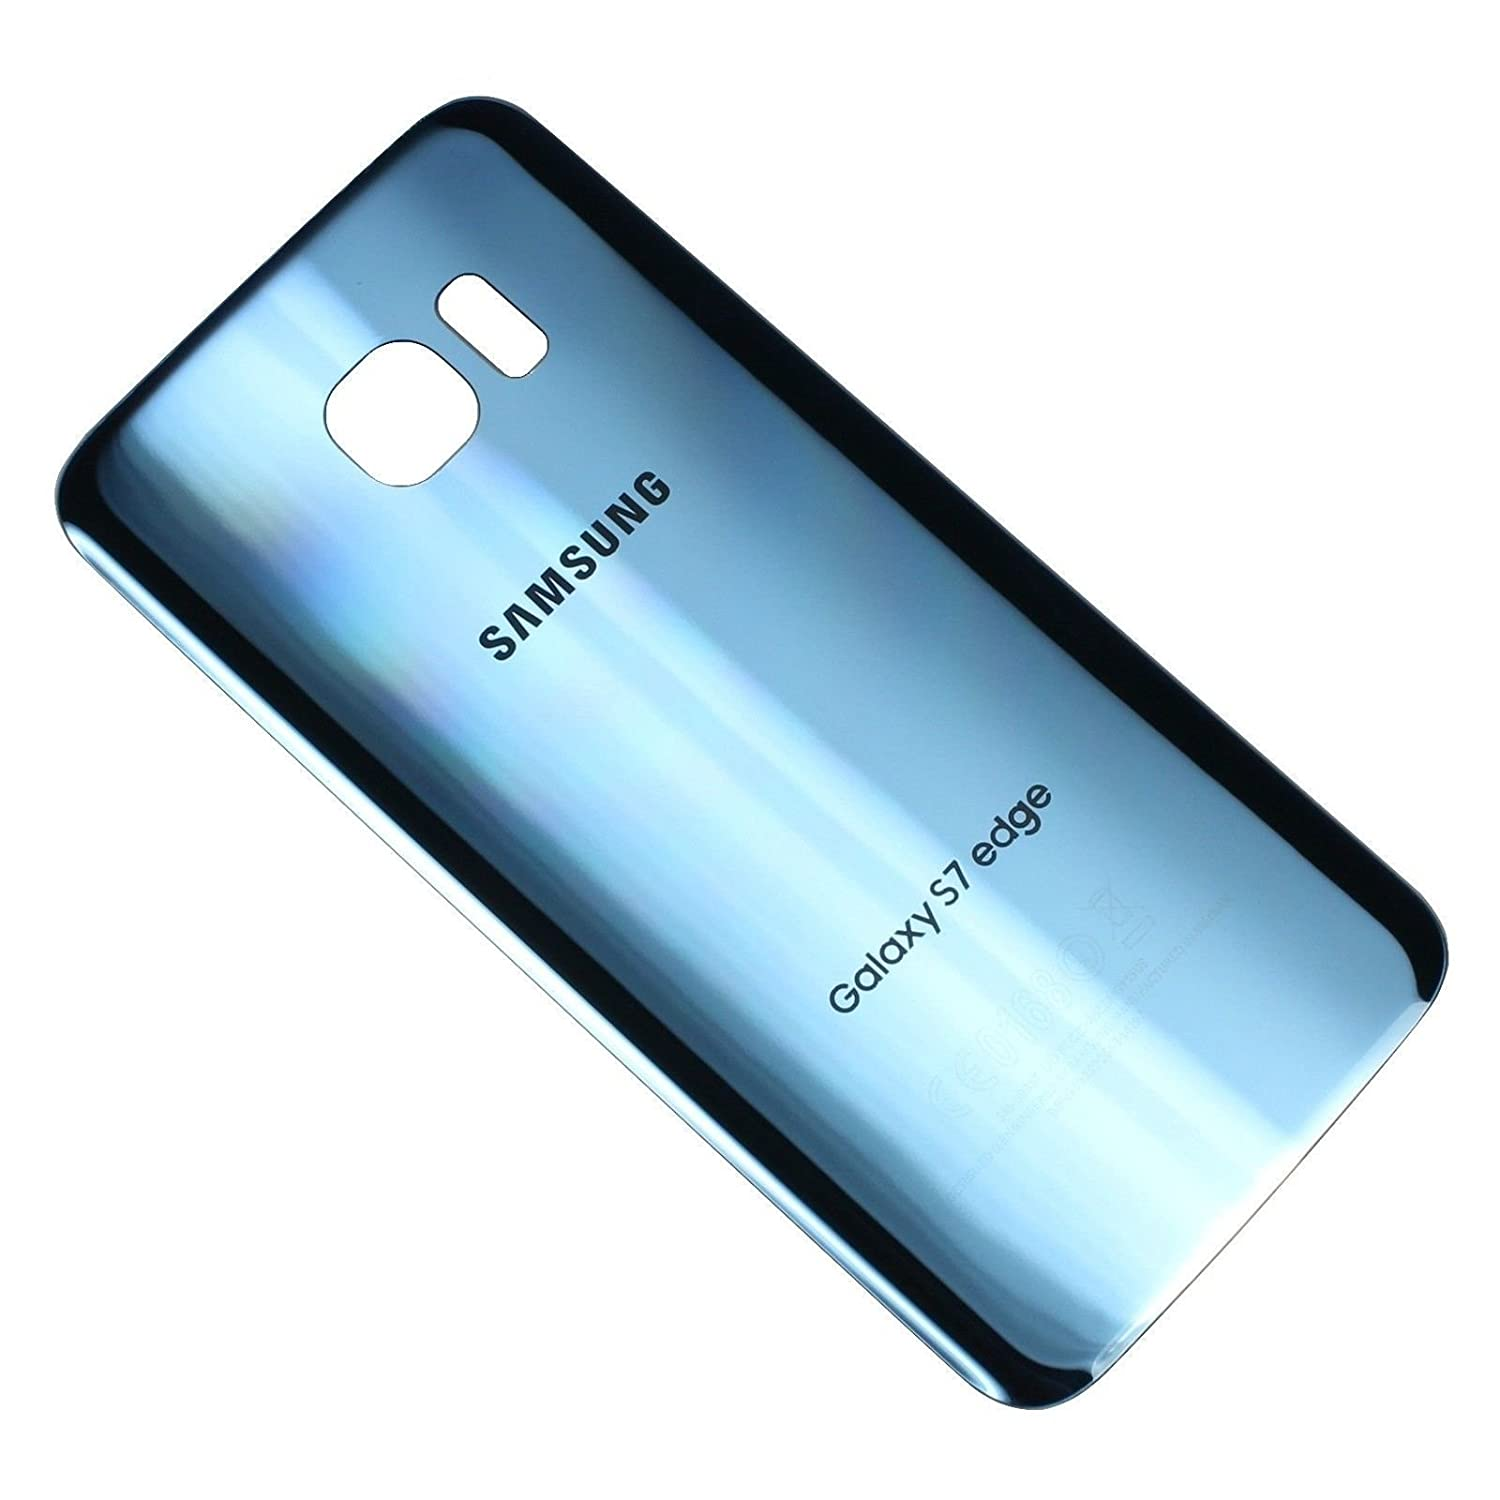 Oem Original Back Glass Cover Battery Door Replacement Lcd Touchscreen Samsung S7 Edge Gold For Galaxy G935 Coral Blue Cell Phones Accessories